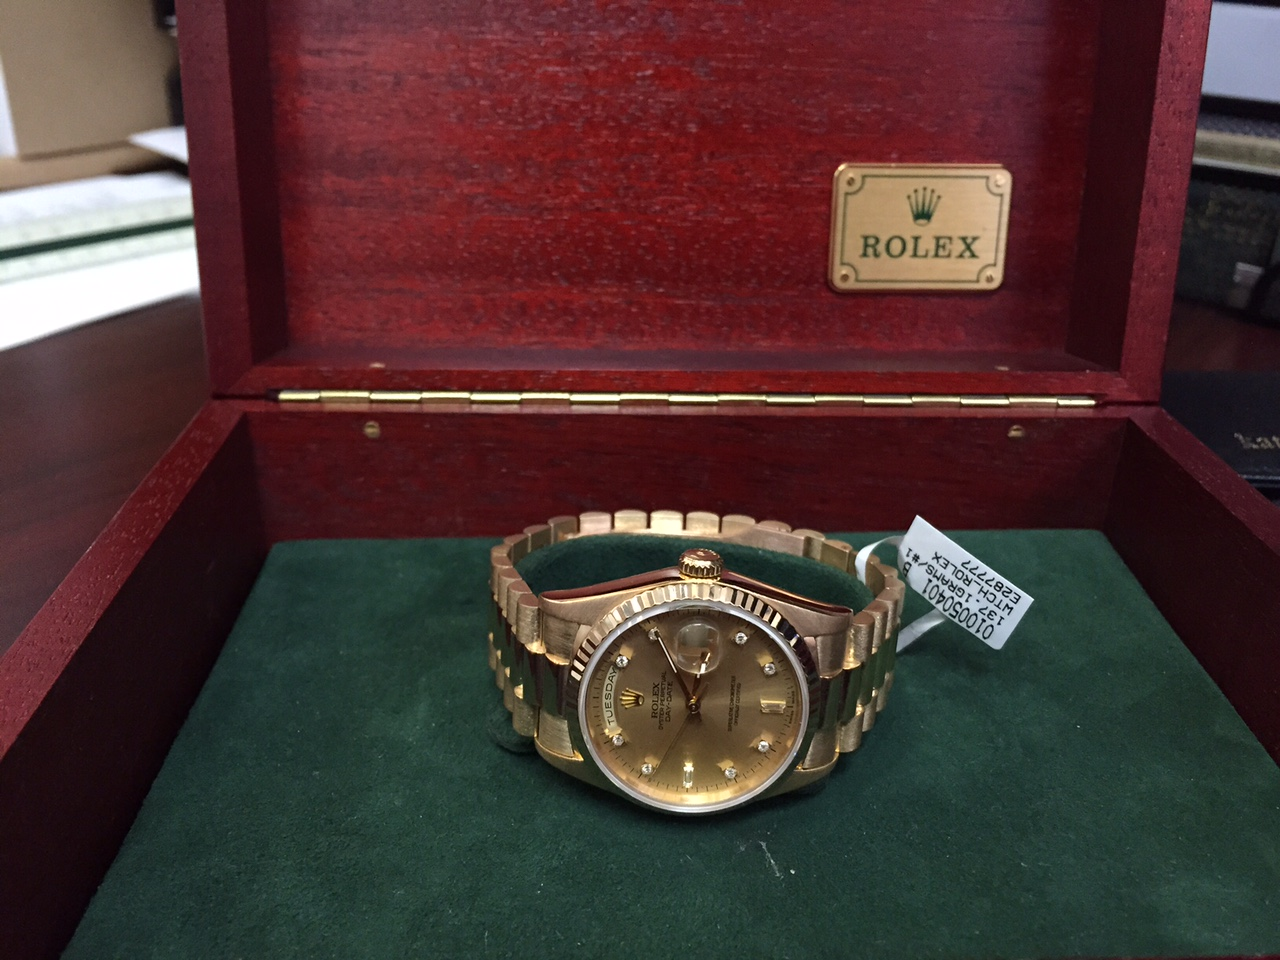 Rolex President Diamond Day-Date - $11,000